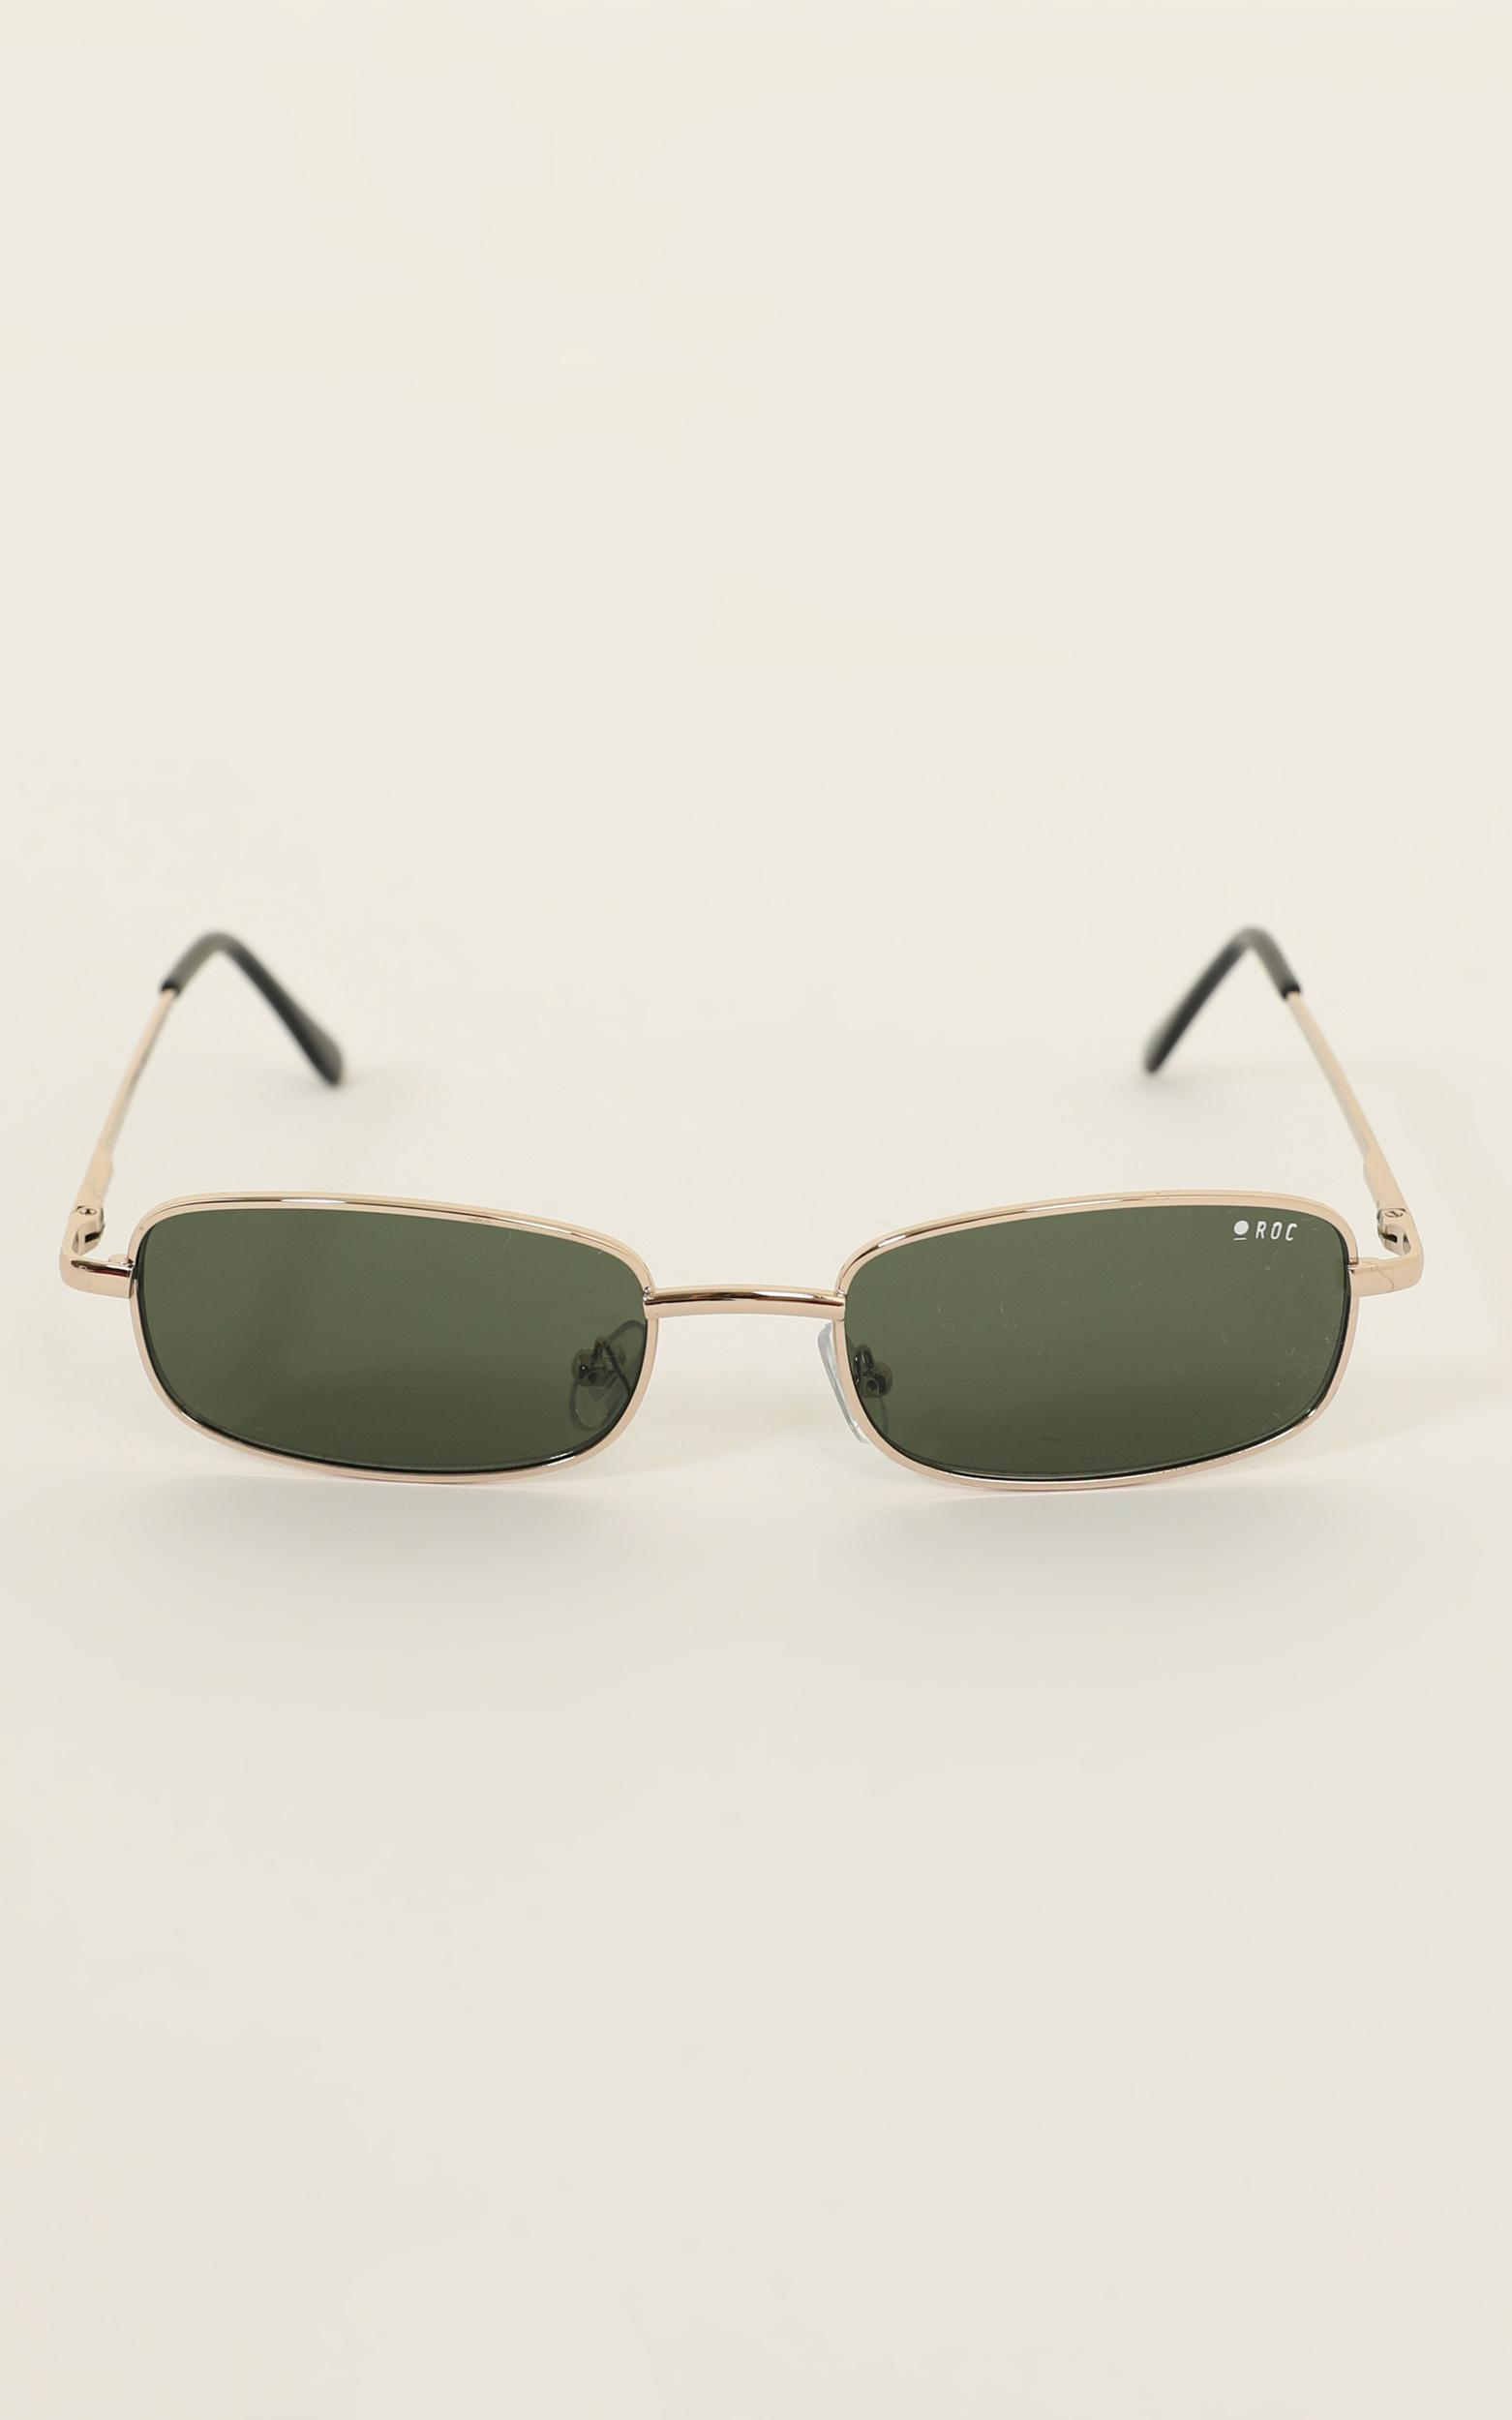 Roc - Double Agent Sunglasses In Gold, , hi-res image number null